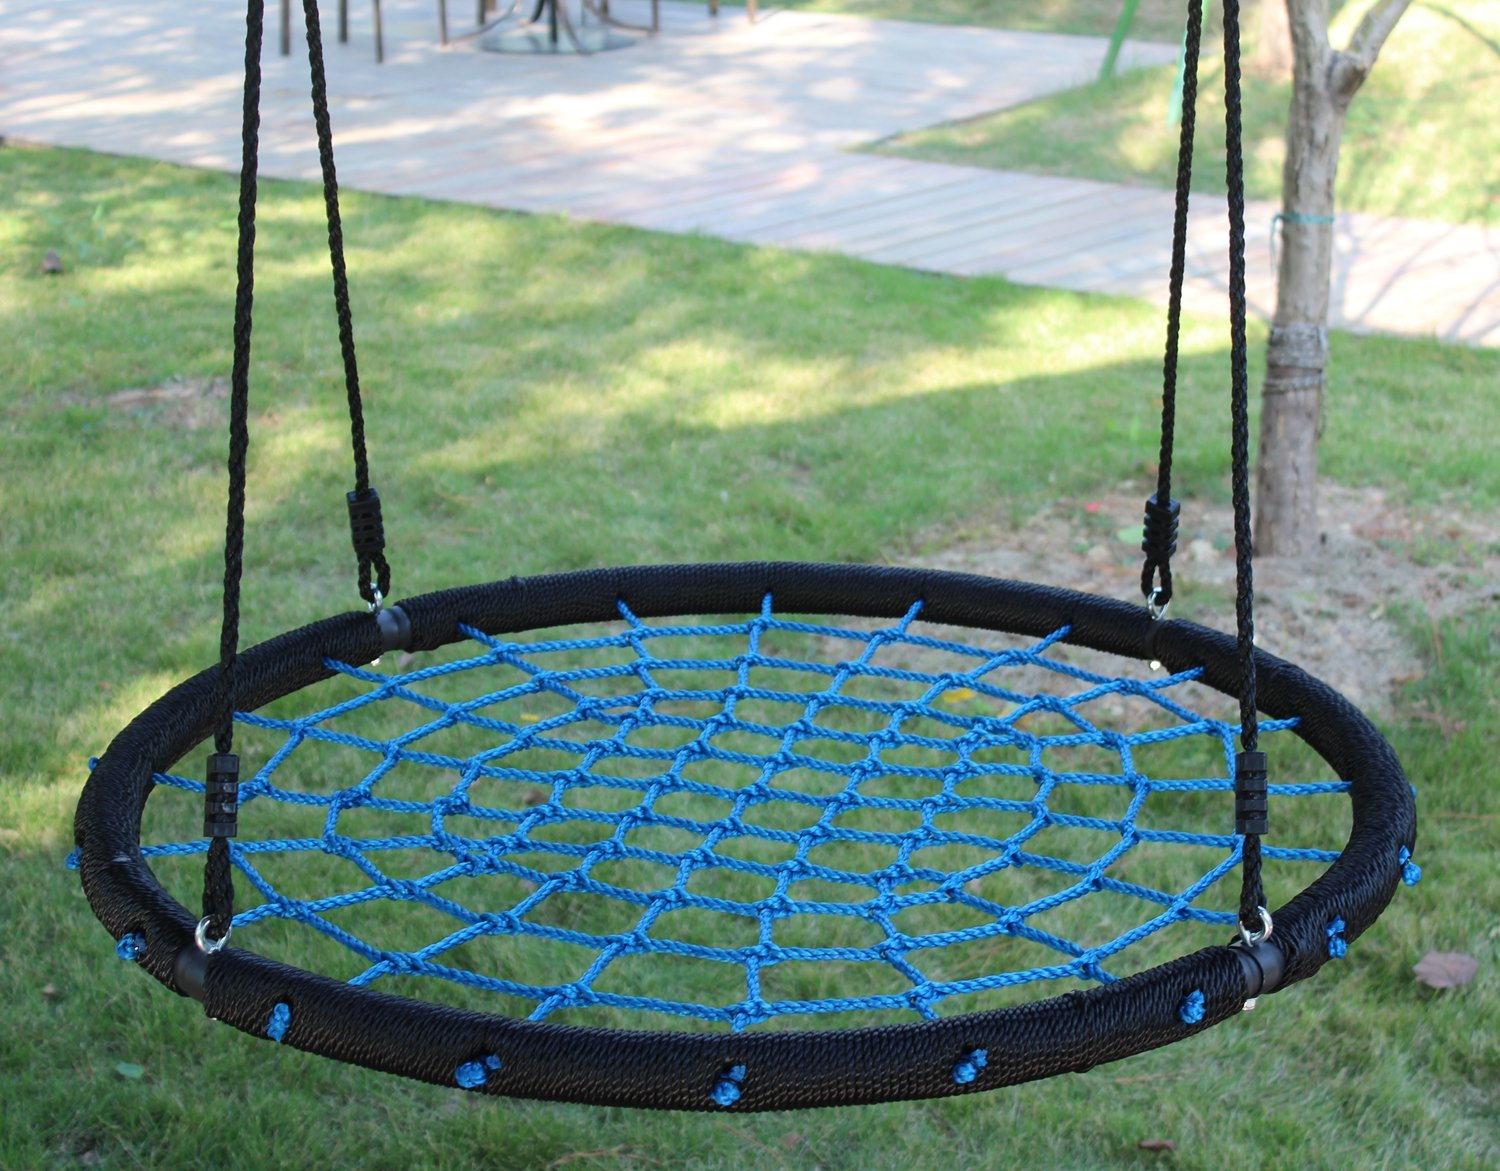 637a3a133ea1 Blau Movement God Spider Web Tree Swing with Adjustable Hanging ...